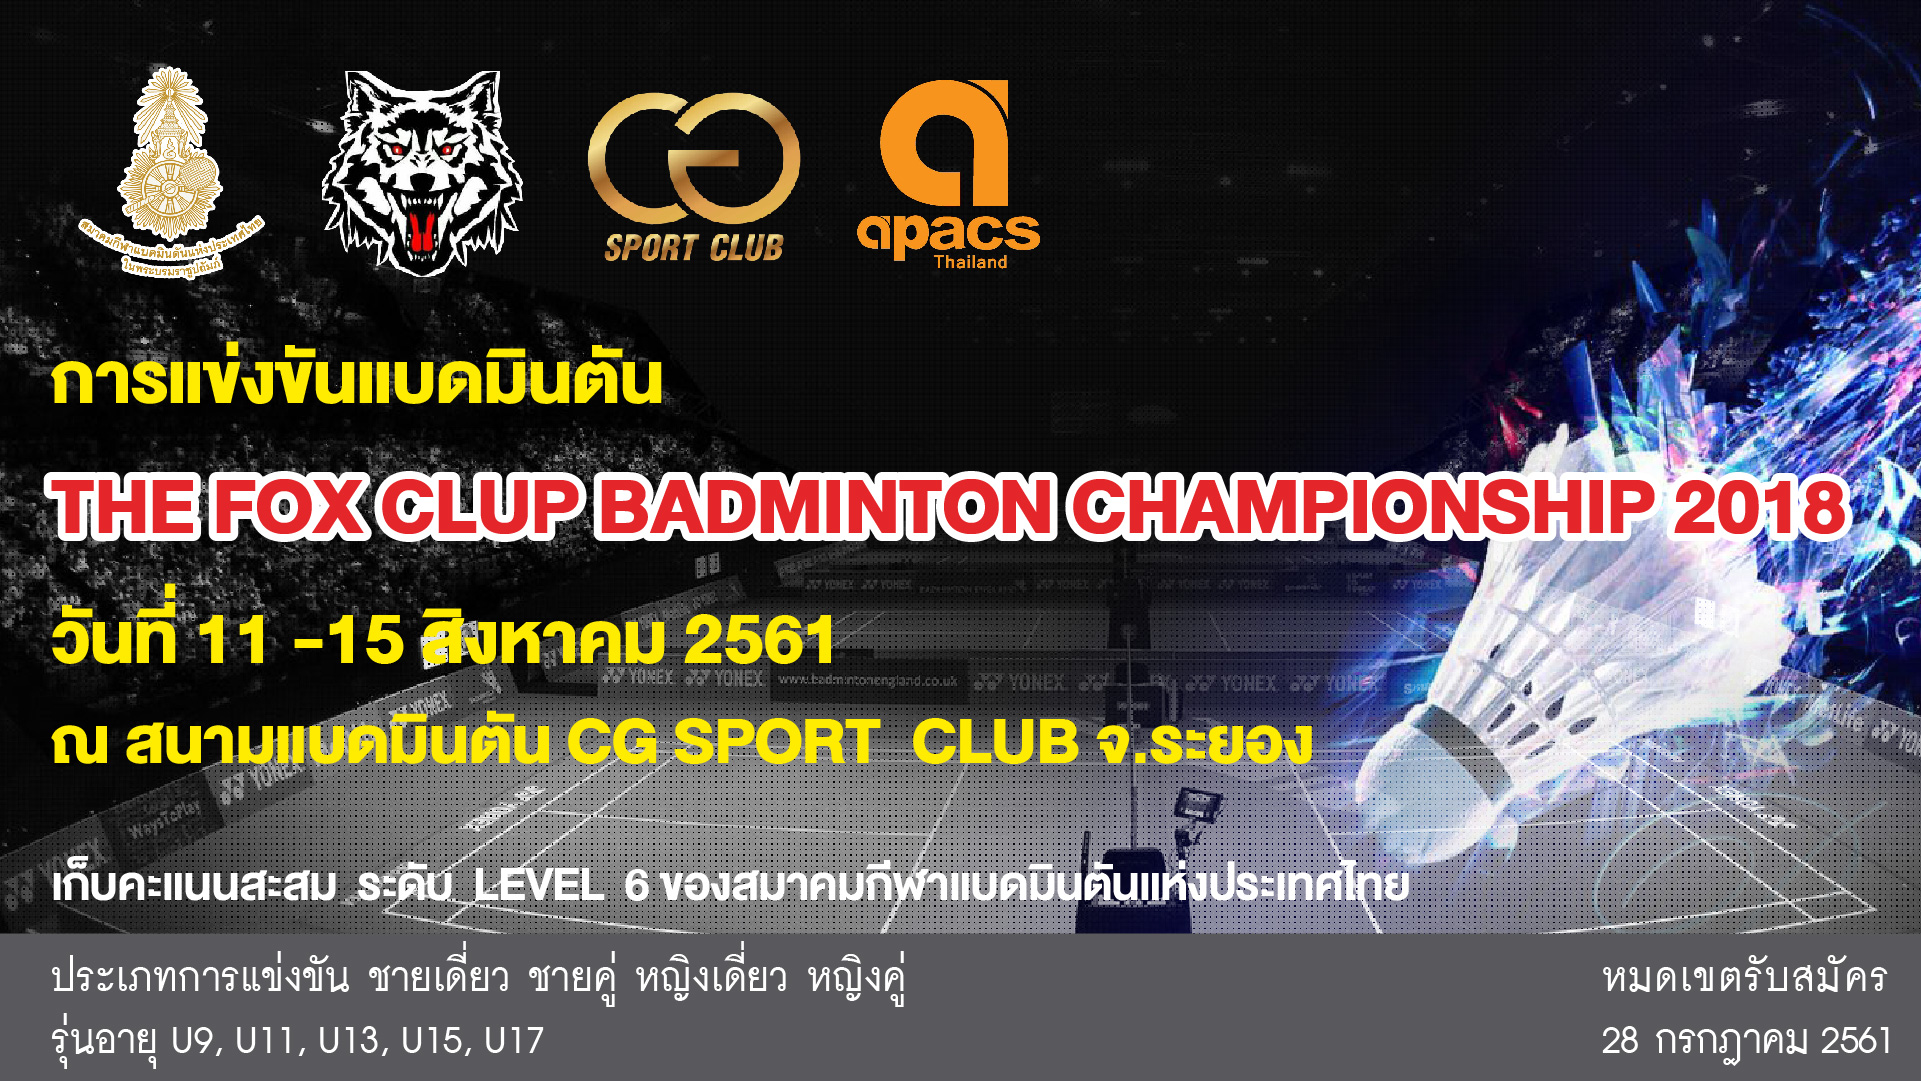 THE FOX CLUP BADMINTON CHAMPIONSHIP 2018